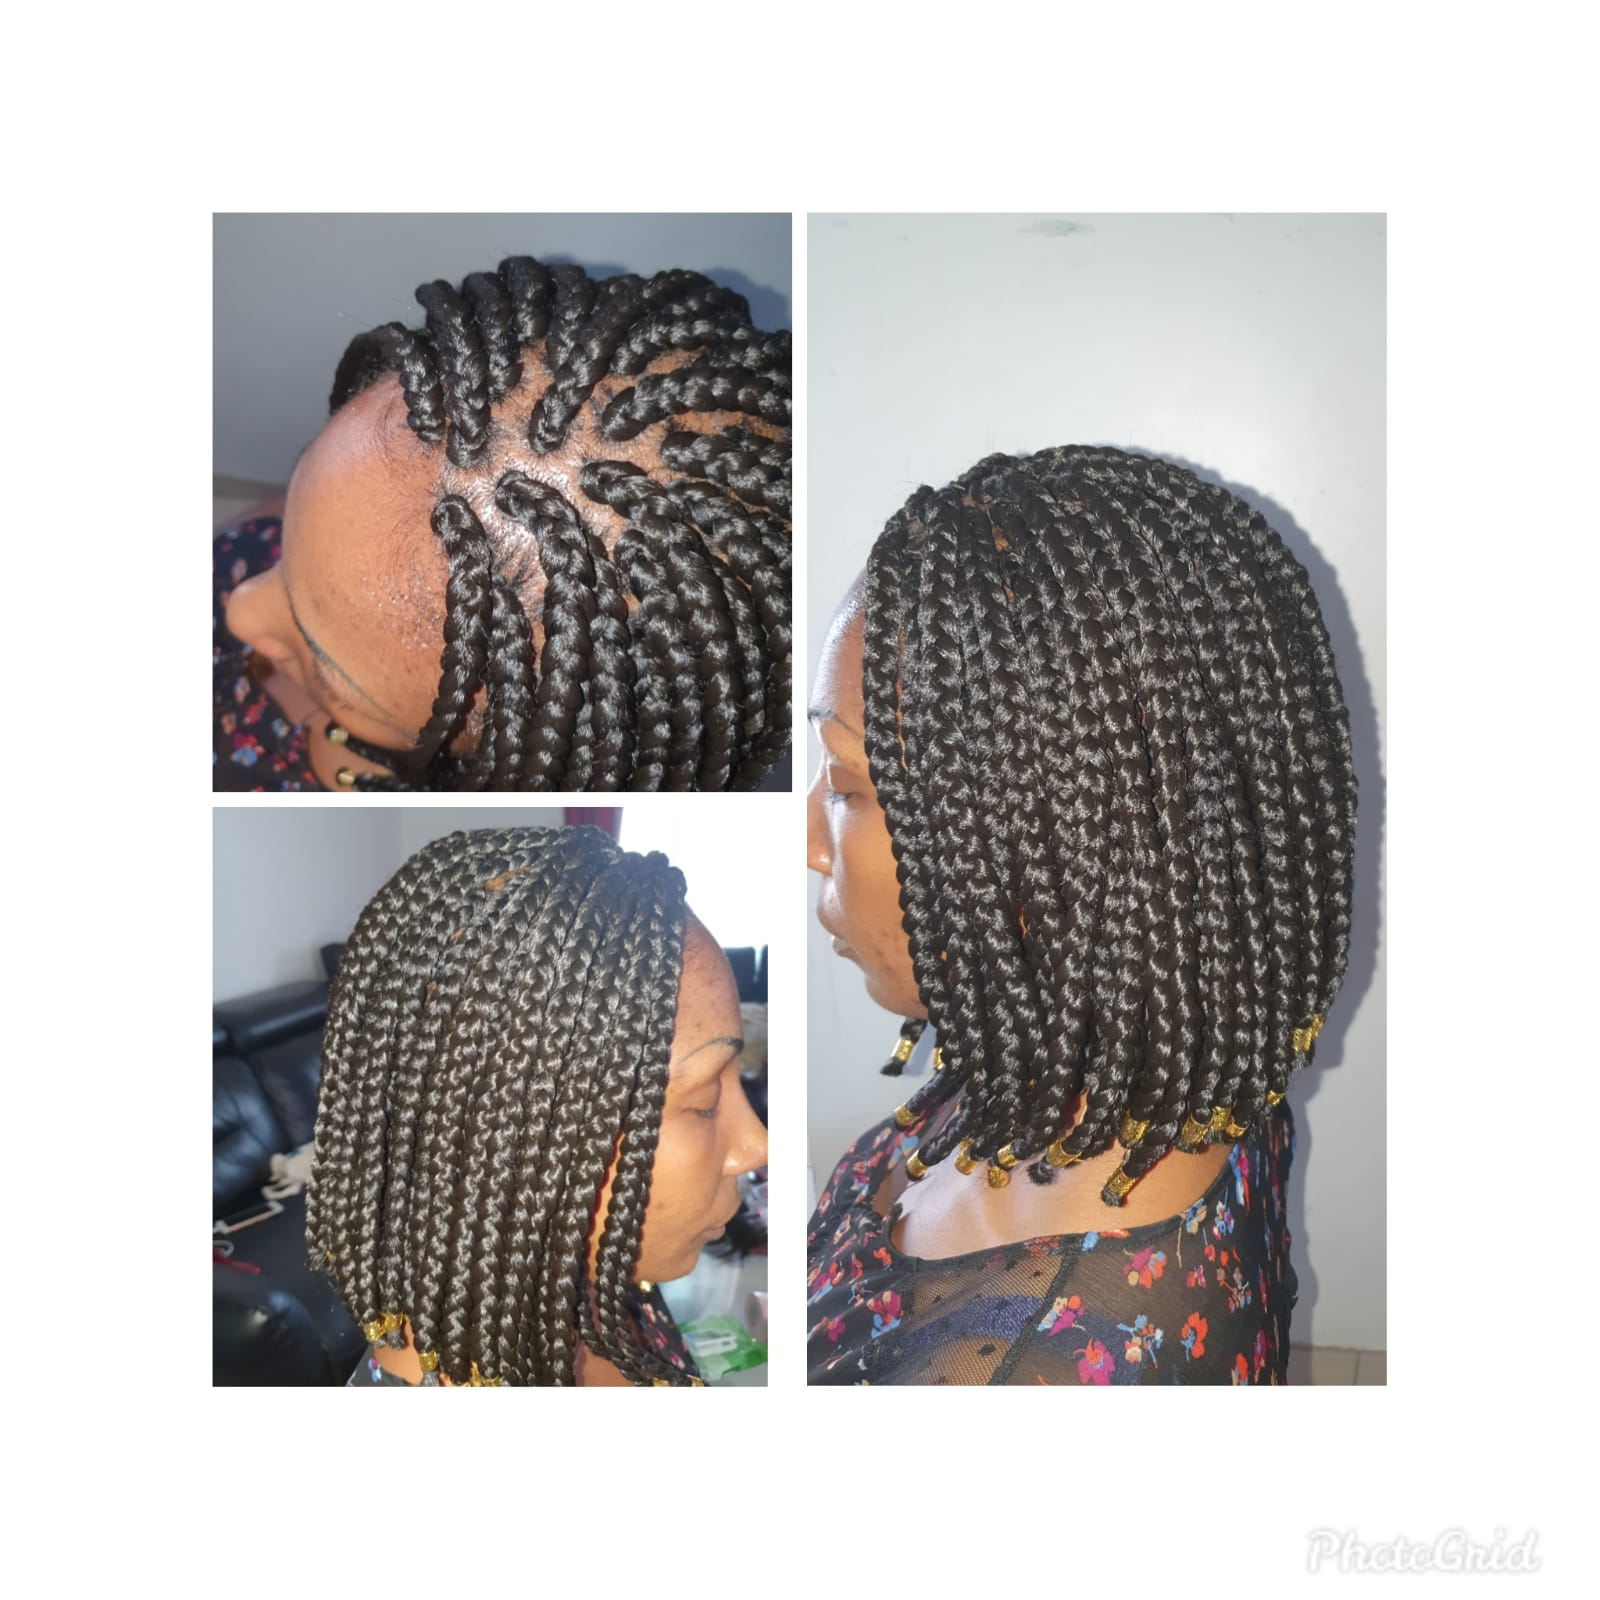 salon de coiffure afro tresse tresses box braids crochet braids vanilles tissages paris 75 77 78 91 92 93 94 95 XUVXRNAU